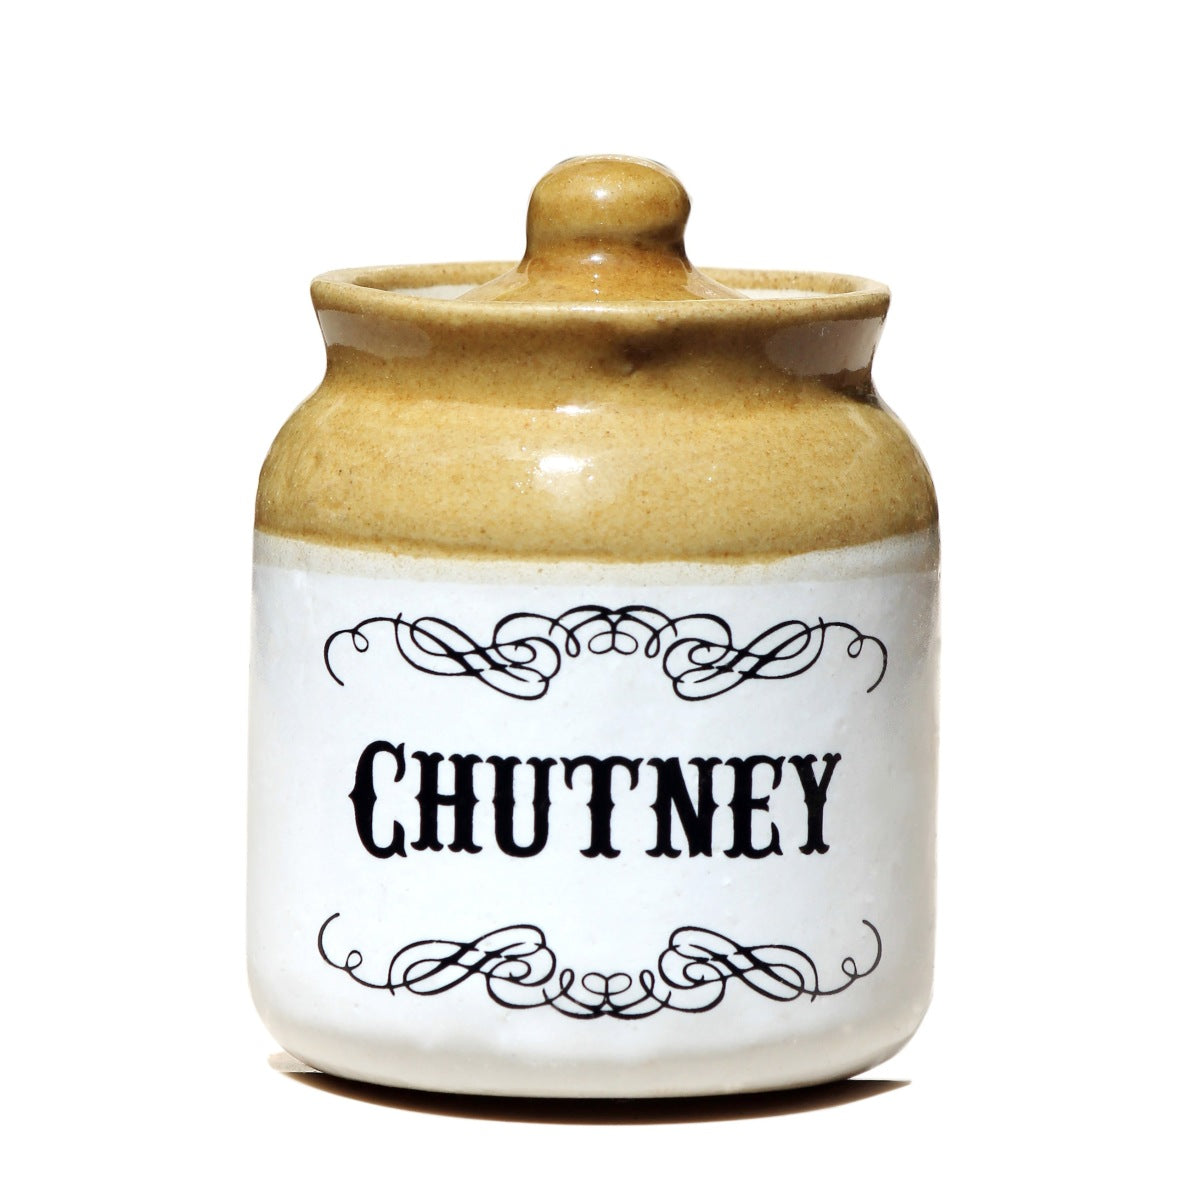 Chutney Ceramic Jar